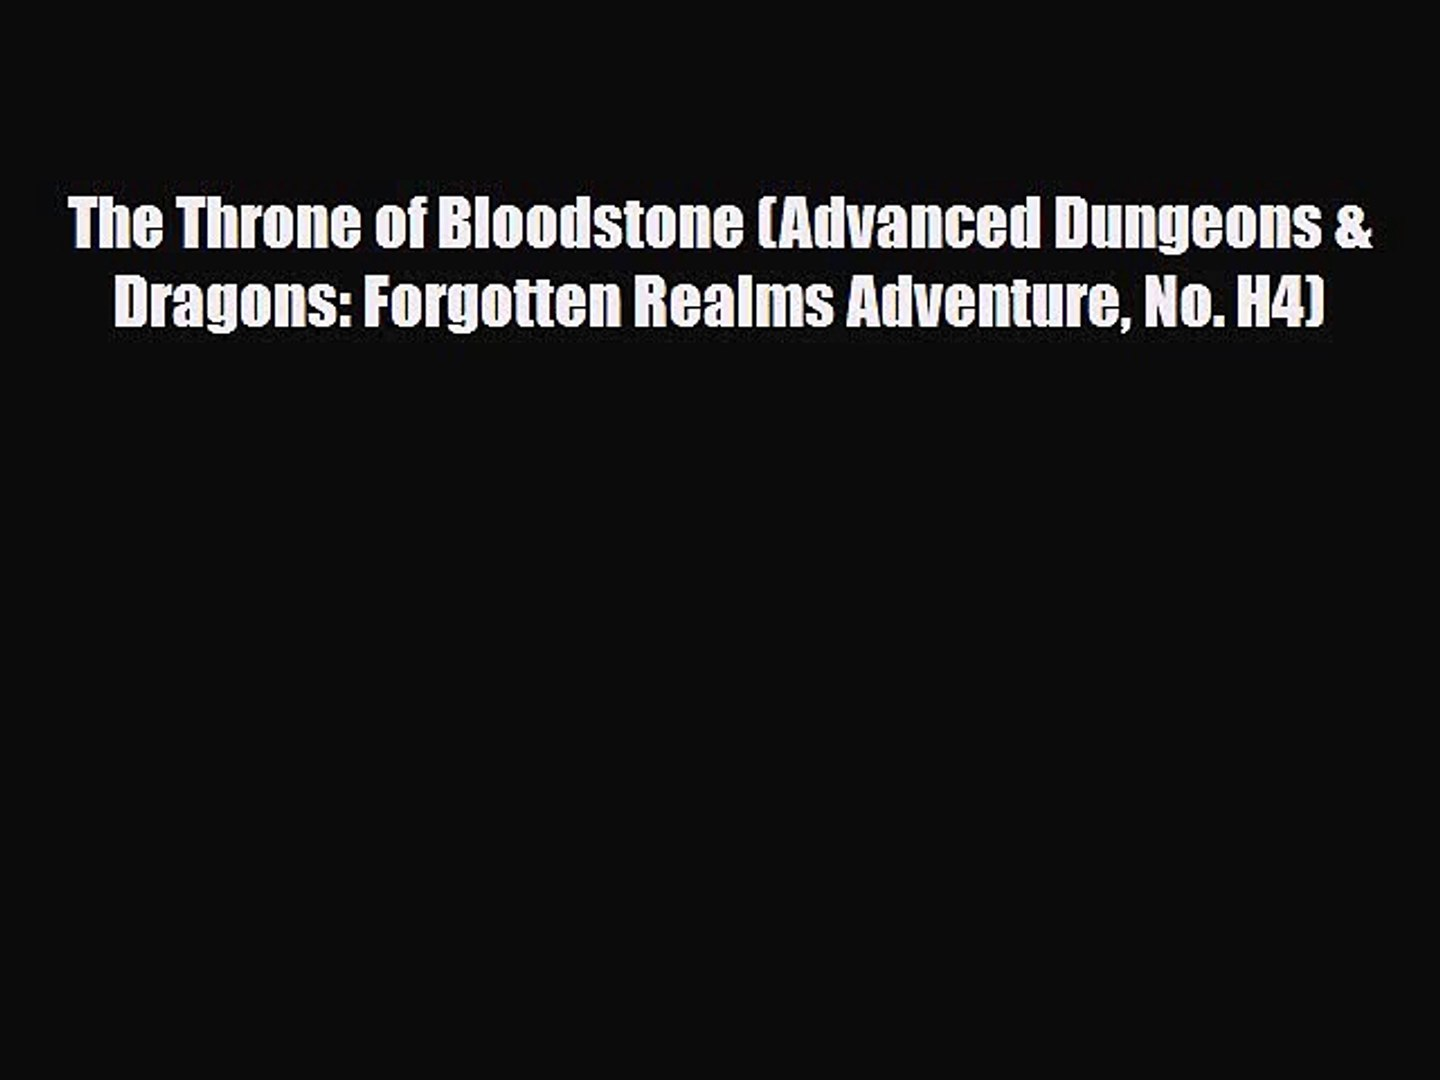 The Throne of Bloodstone (Advanced Dungeons & Dragons: Forgotten Realms Adventure No. H4) [Read]